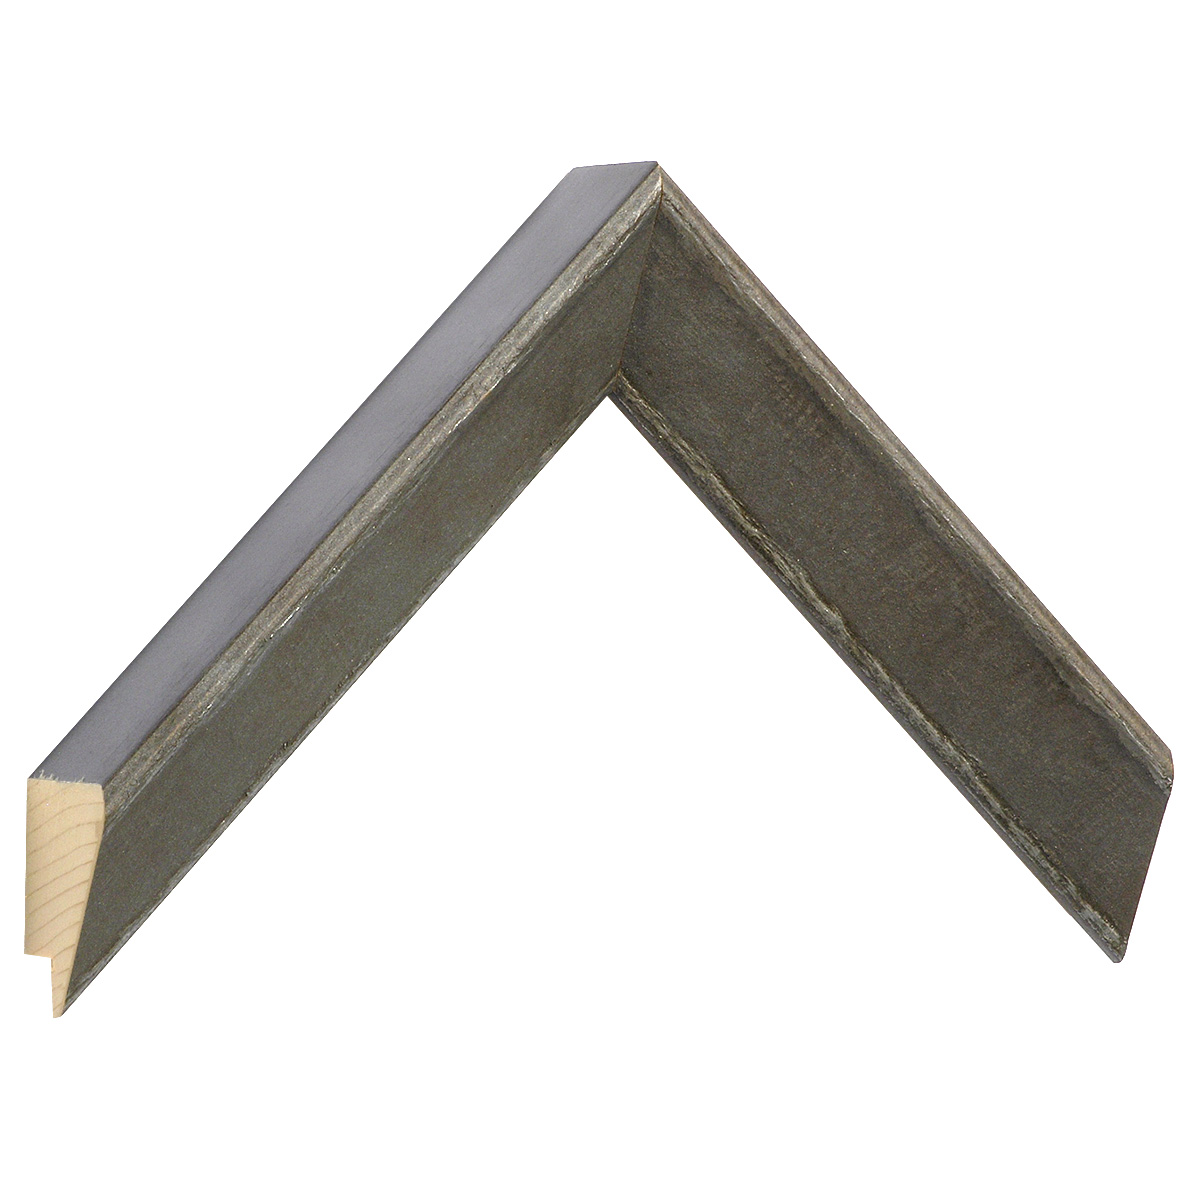 Moulding pine 32 mm height - Grey with silver decor